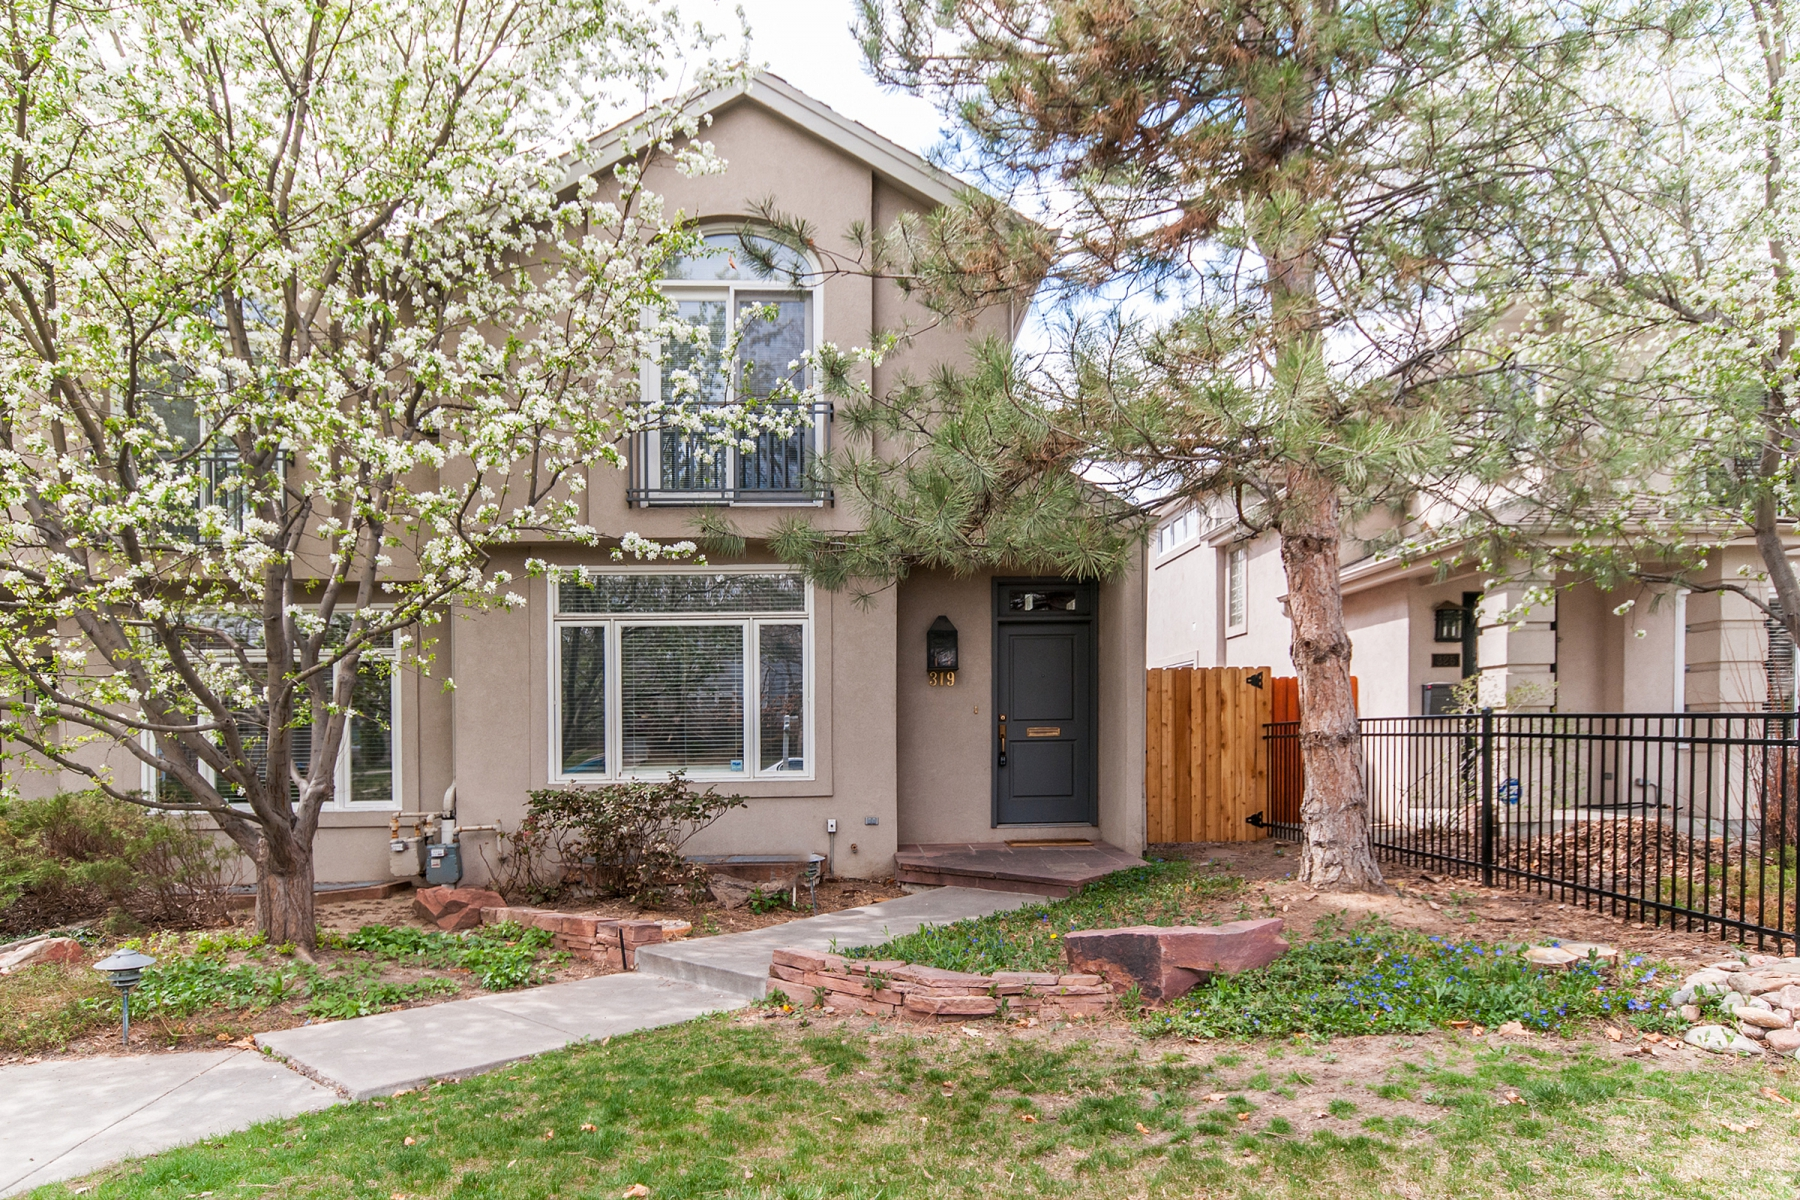 Single Family Home for Sale at 319 Jackson Street Cherry Creek, Denver, Colorado 80206 United States